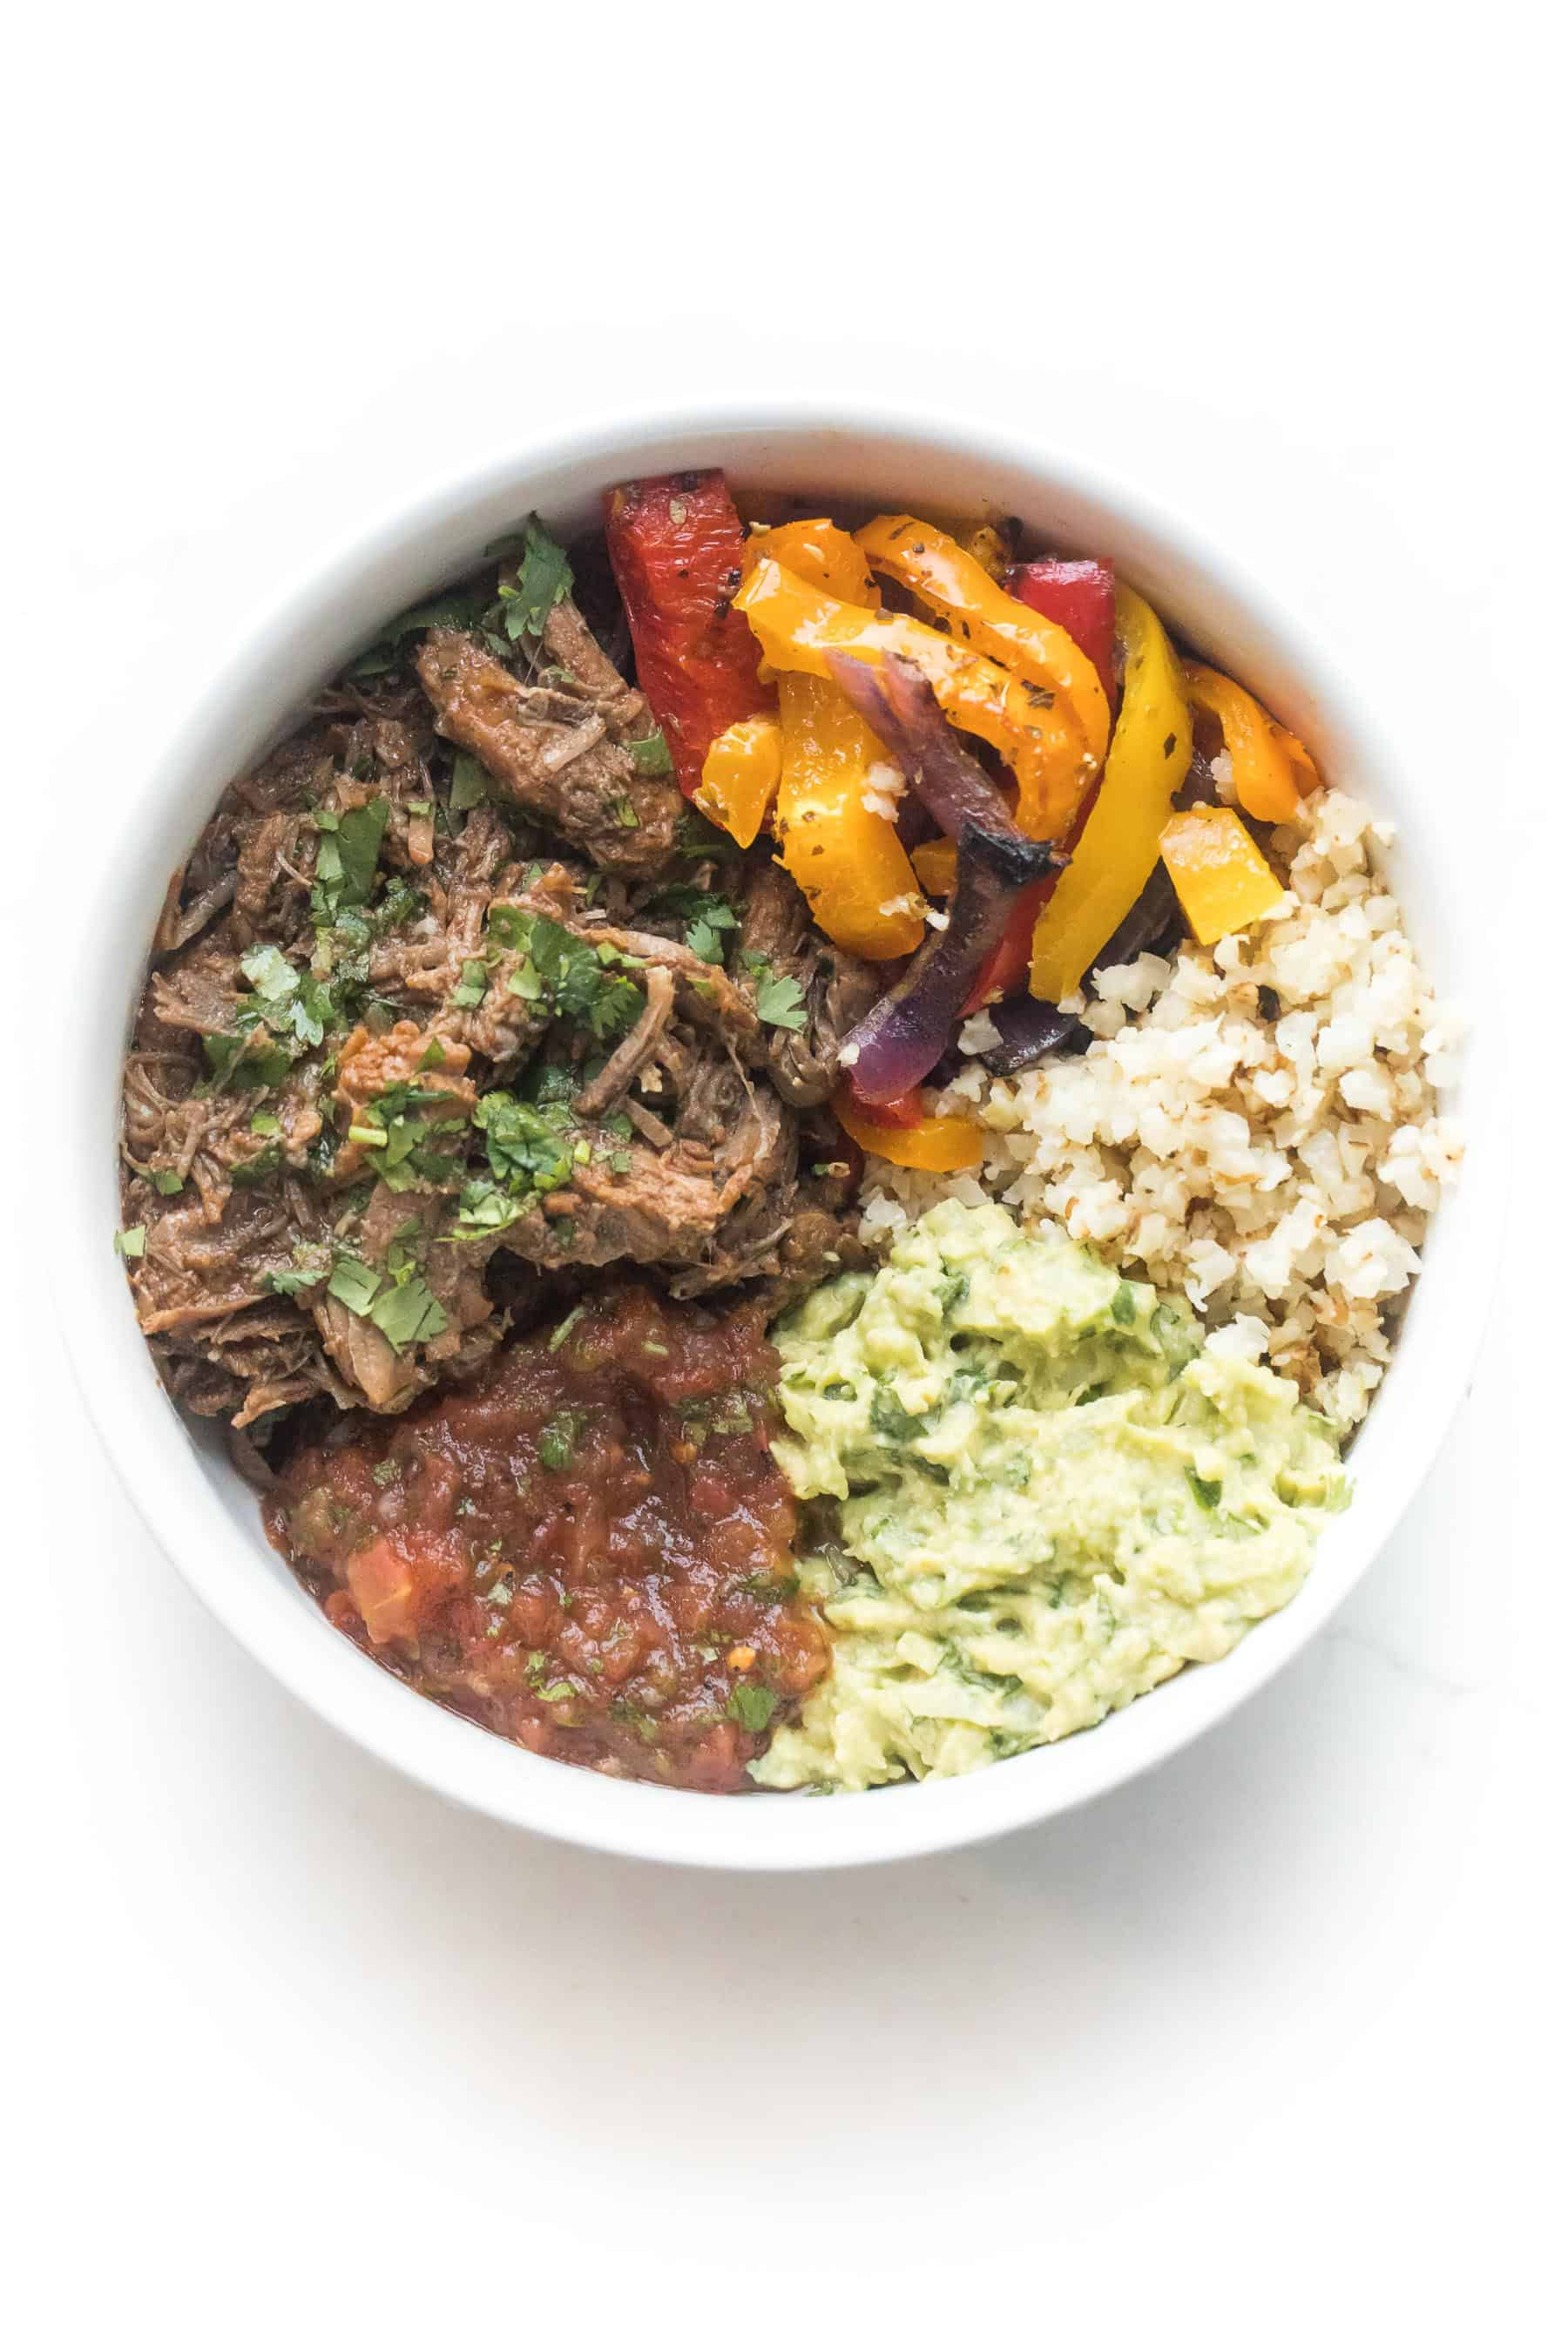 barbacoa burrito bowls on a white background